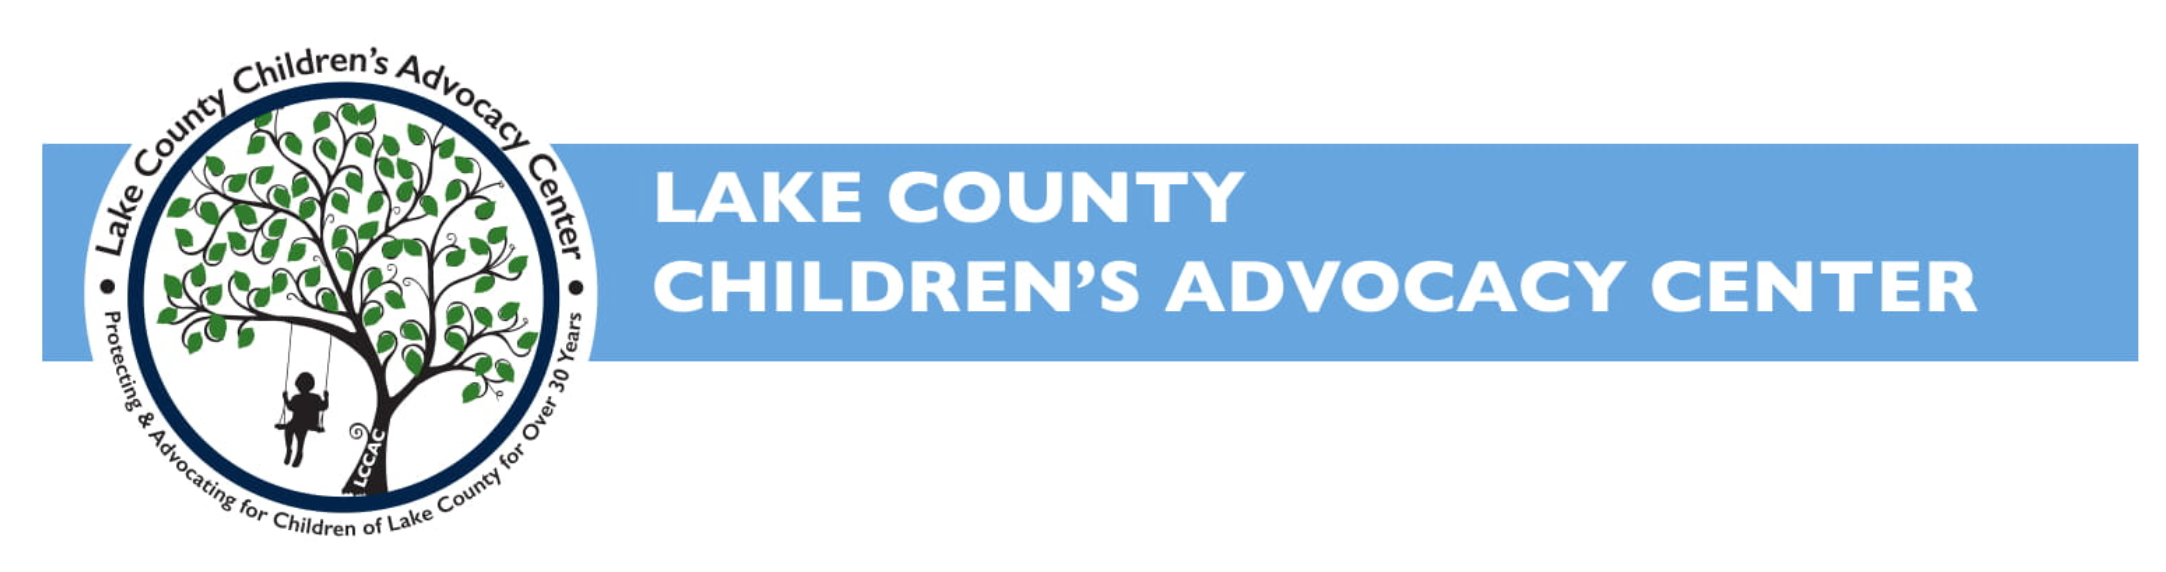 Lake County Children's Advocacy Center